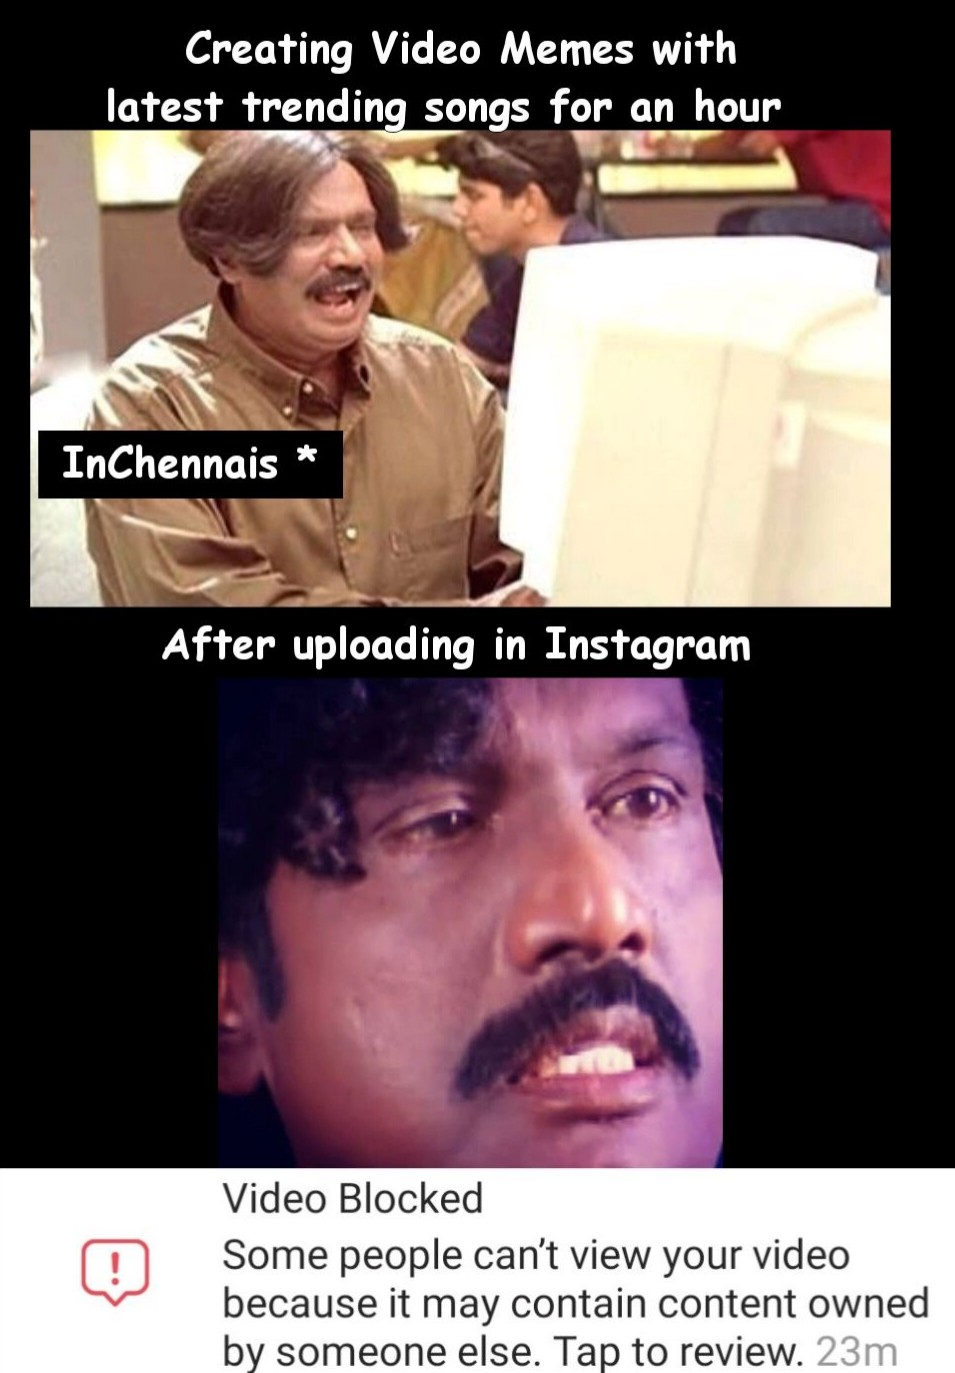 Video Meme Creation for Instagram - Tamil Meme